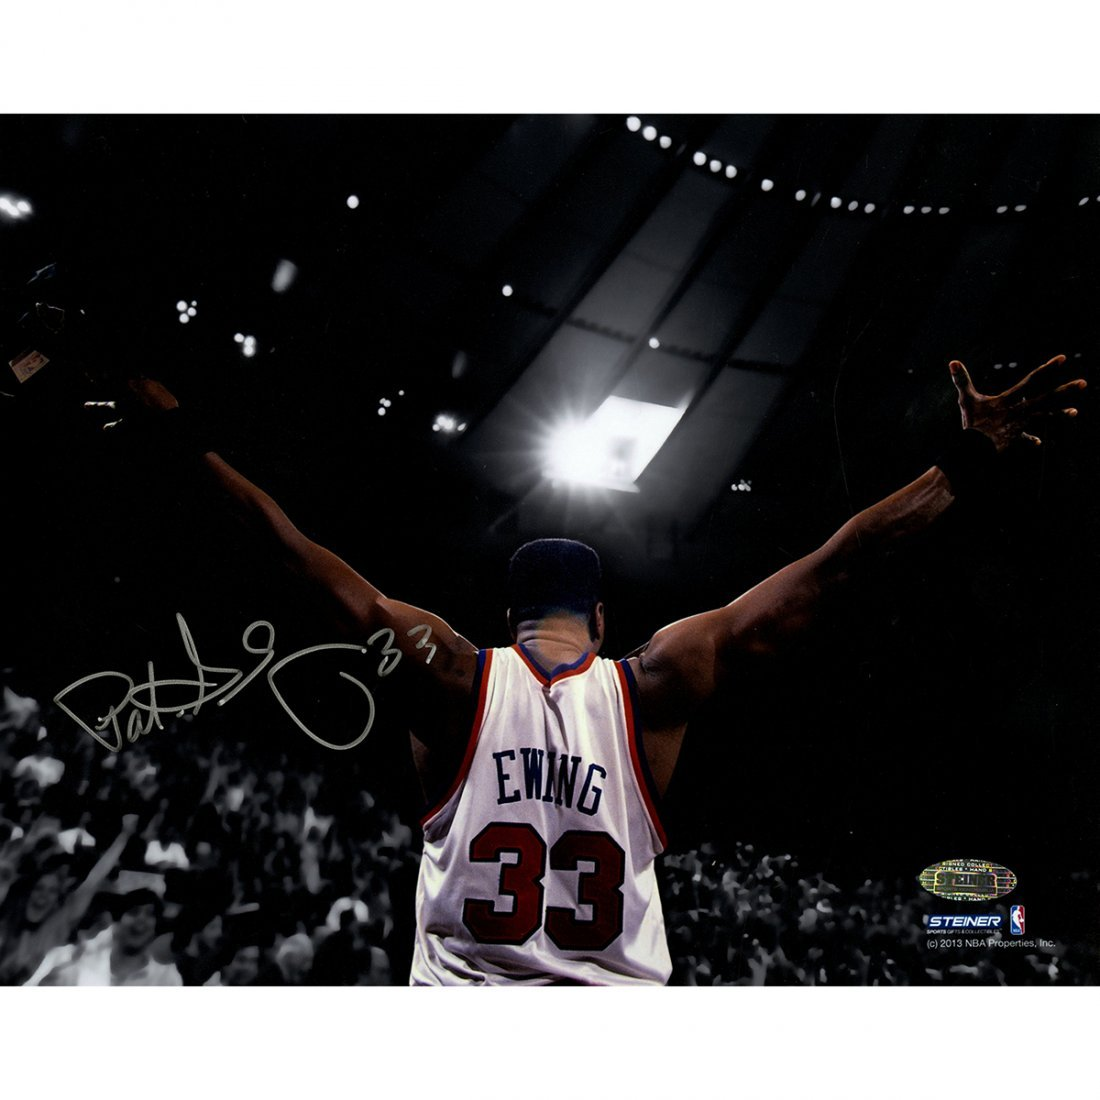 Patrick Ewing Signed Arms Out Facing Crowd 8x10 Photo